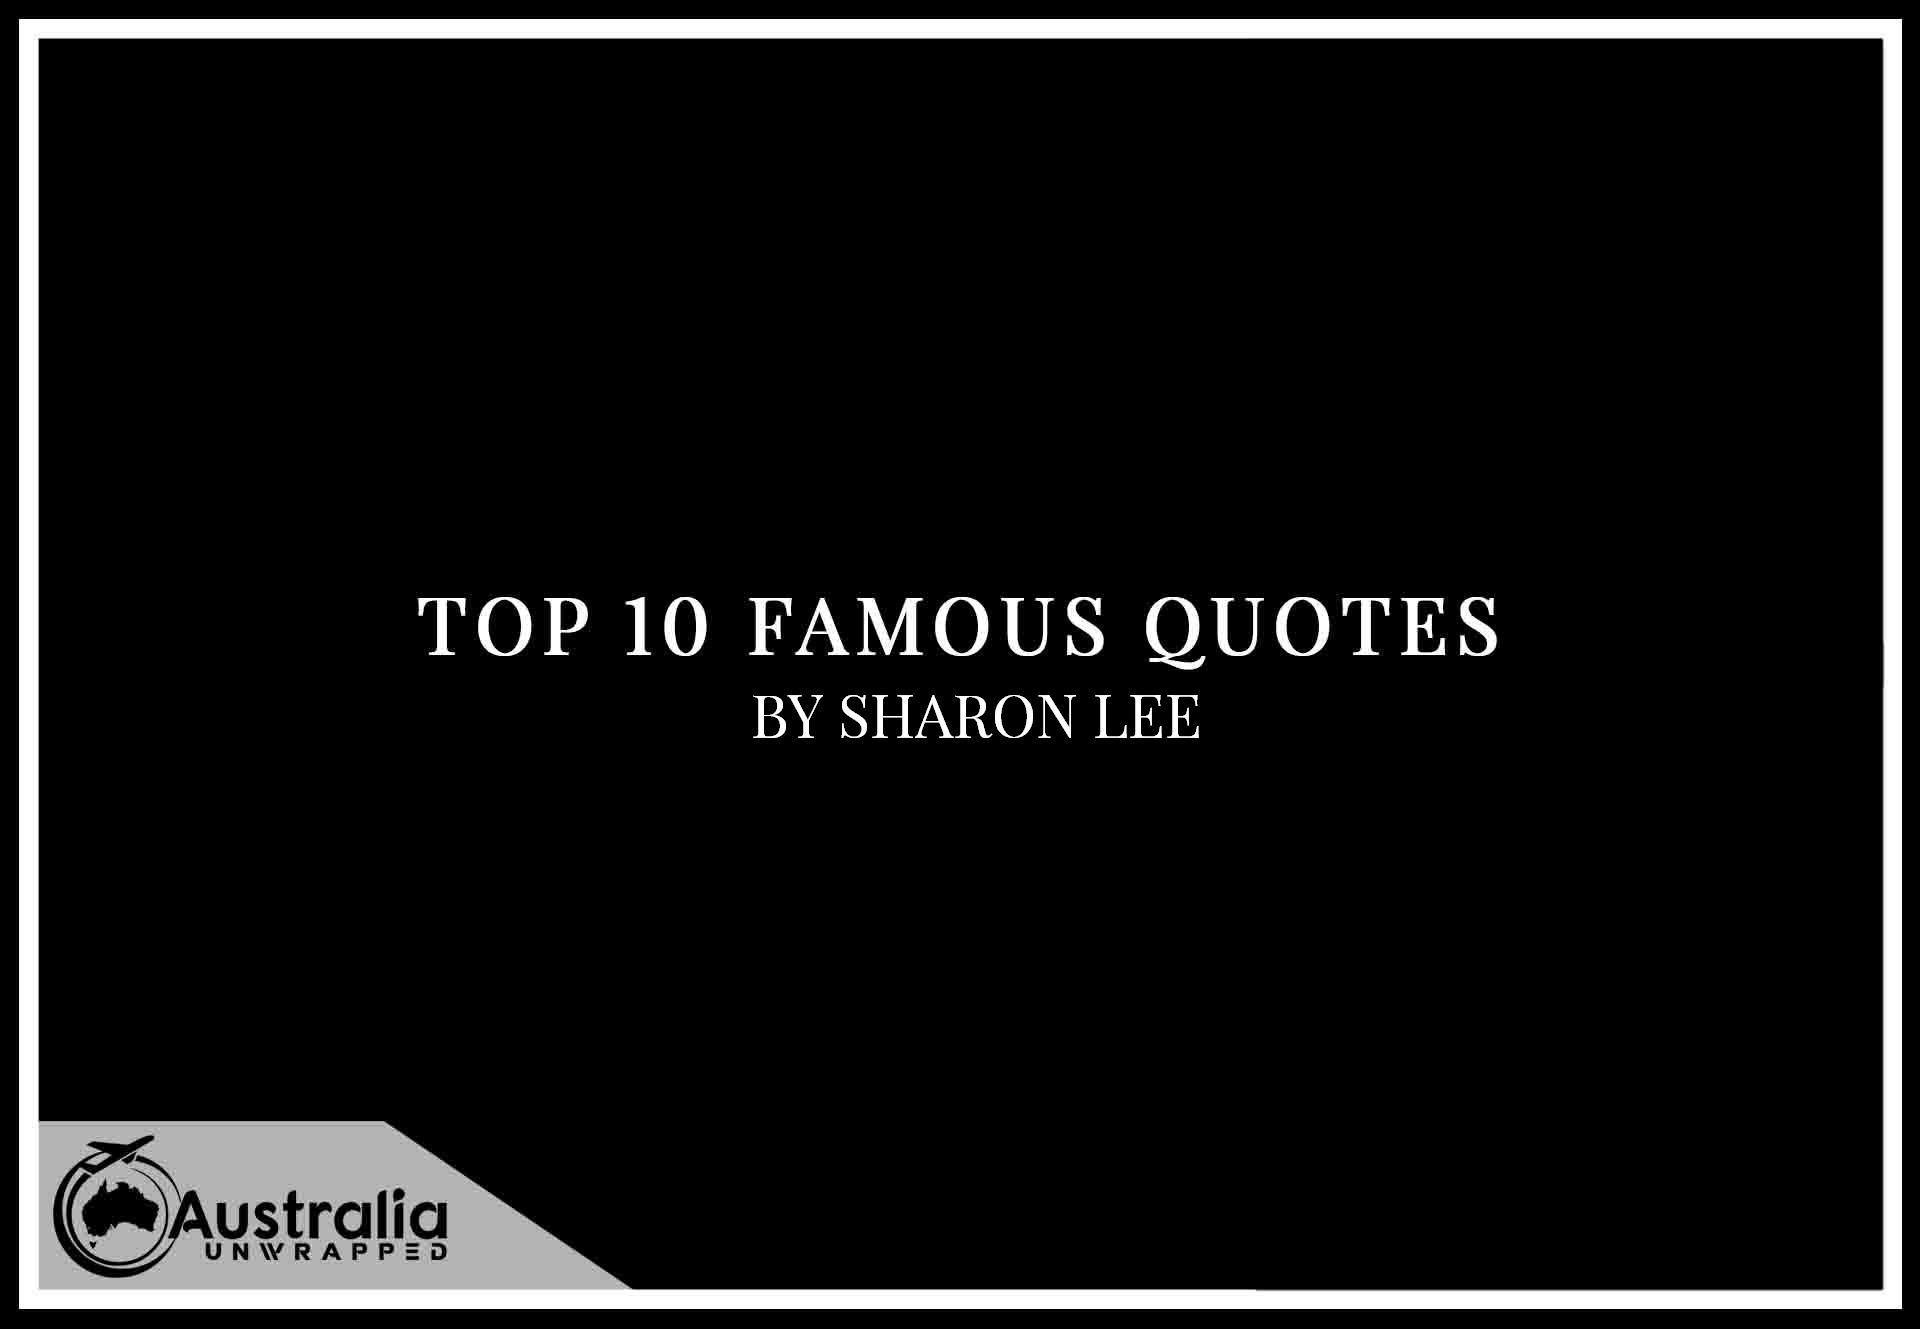 Top 10 Famous Quotes by Author Sharon Lee